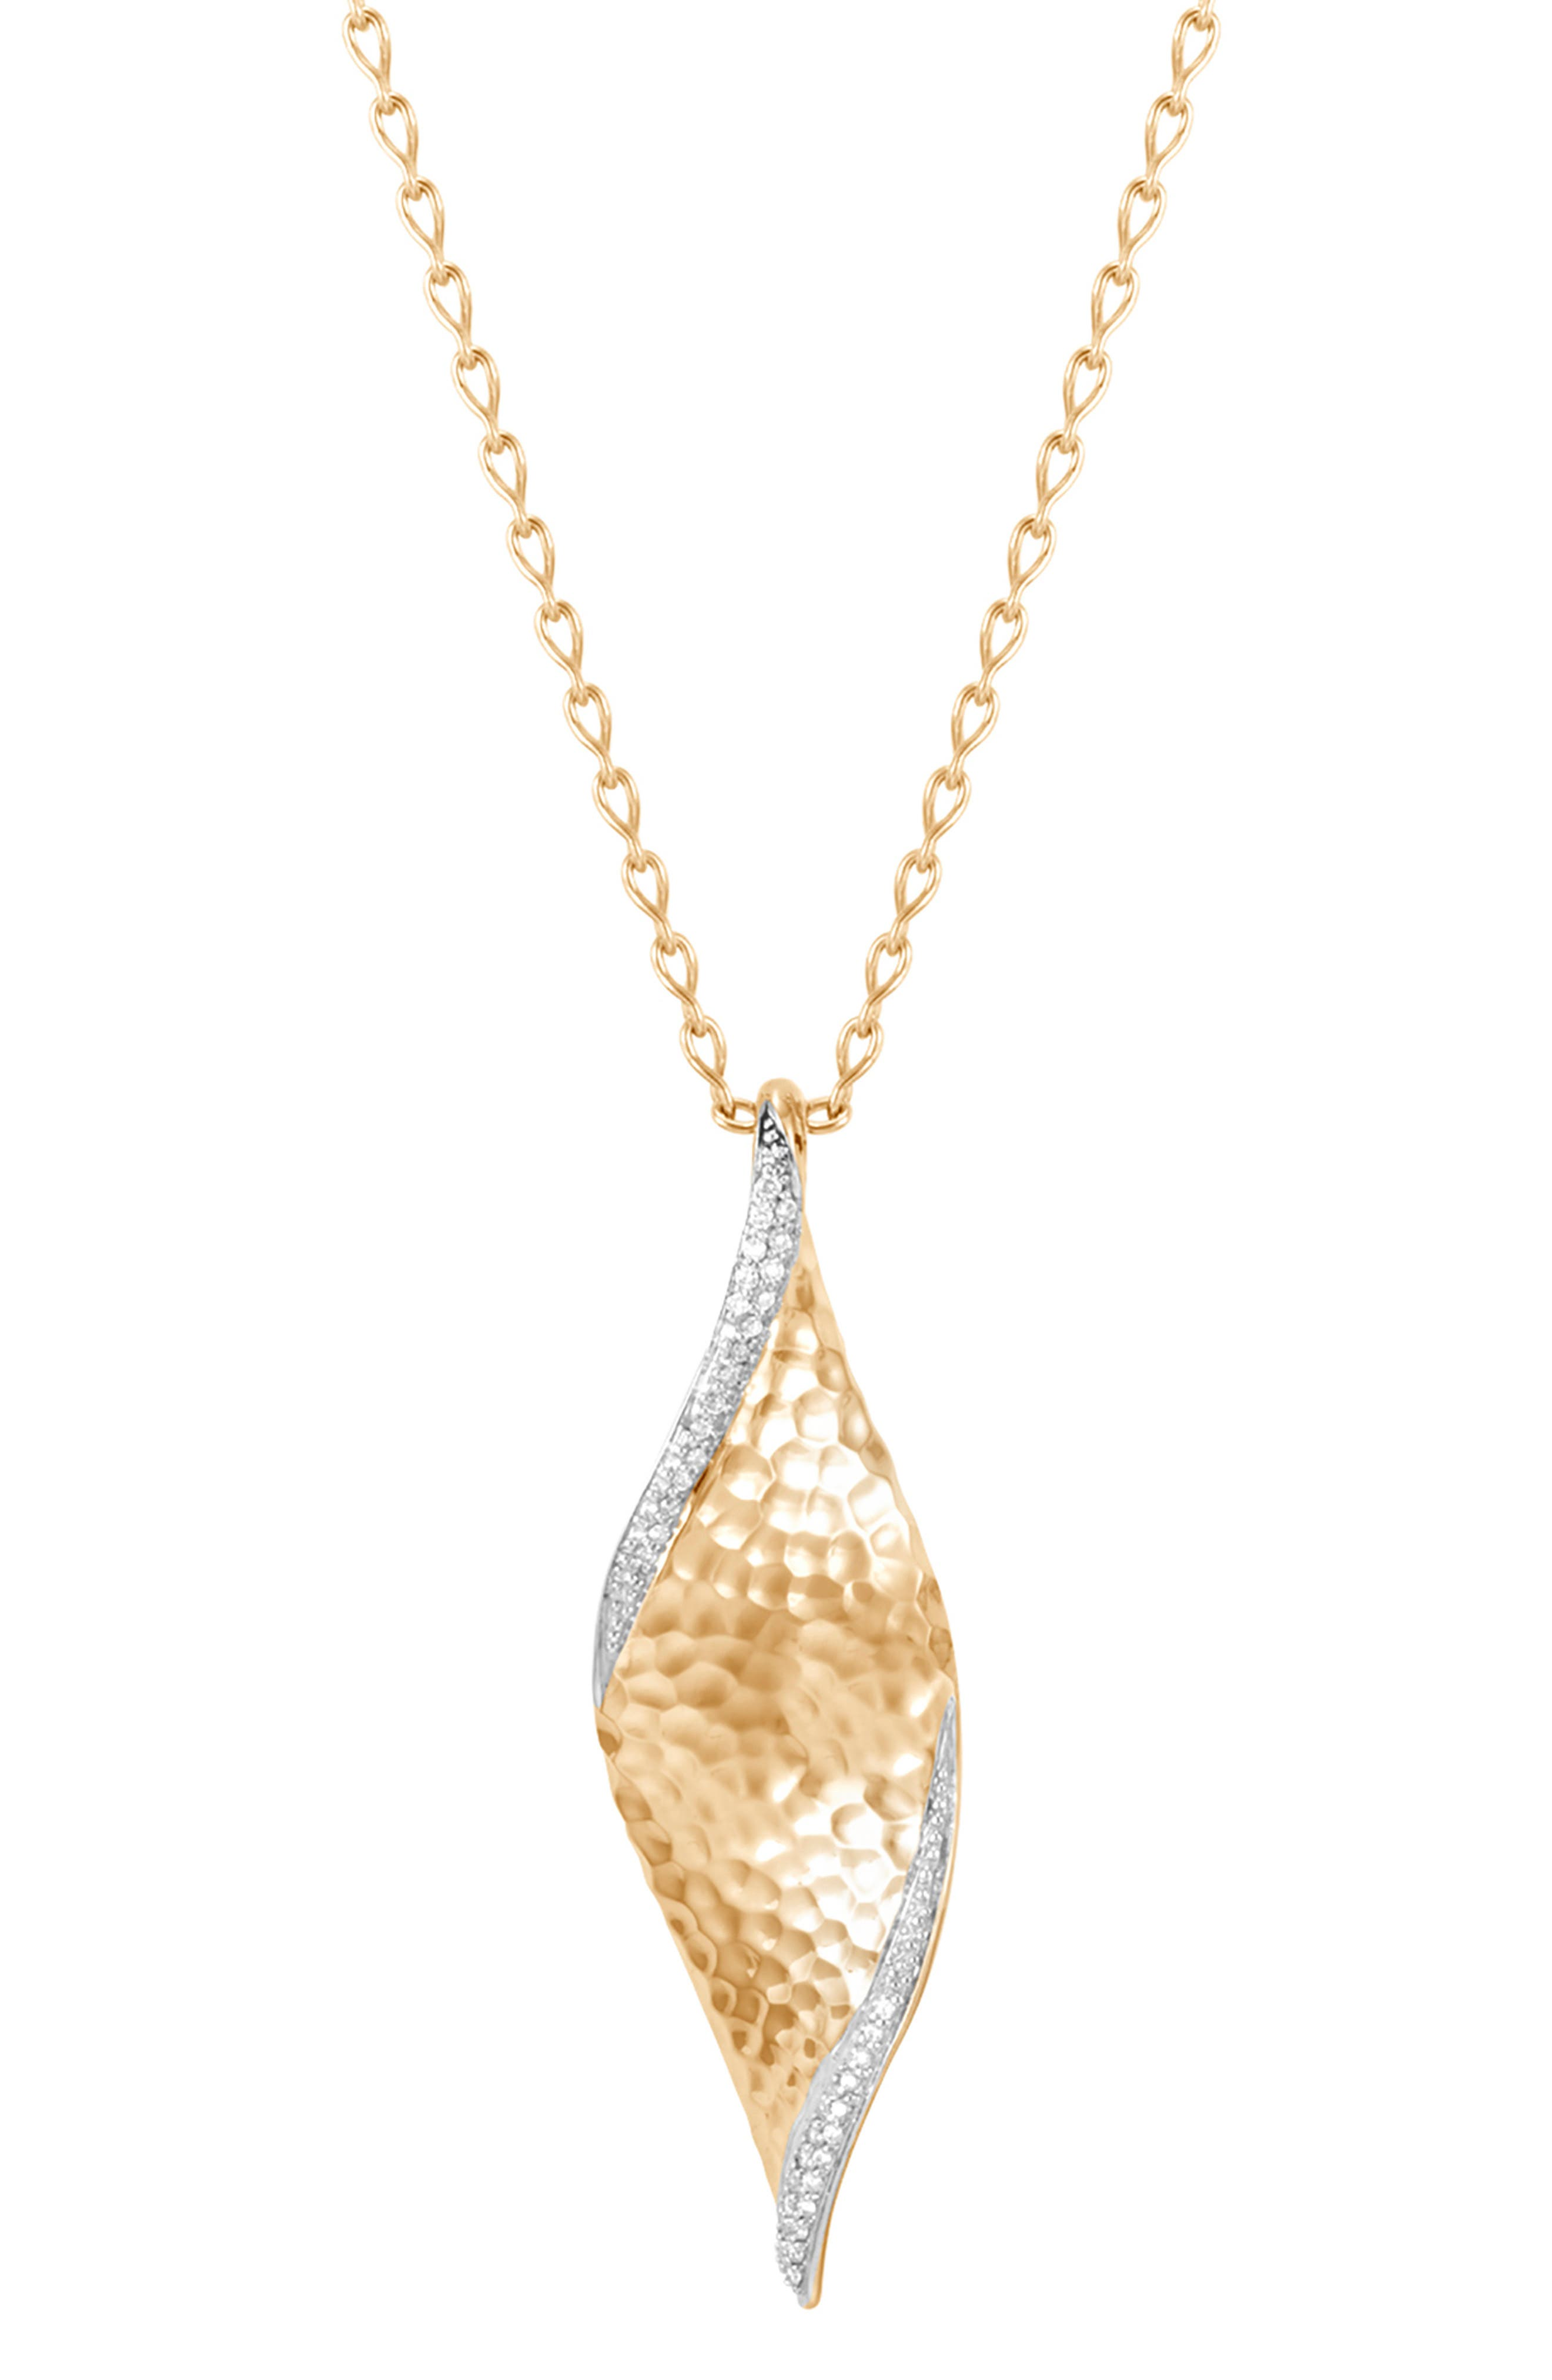 Diamond Hammered Wave Pendant Necklace,                             Main thumbnail 1, color,                             710